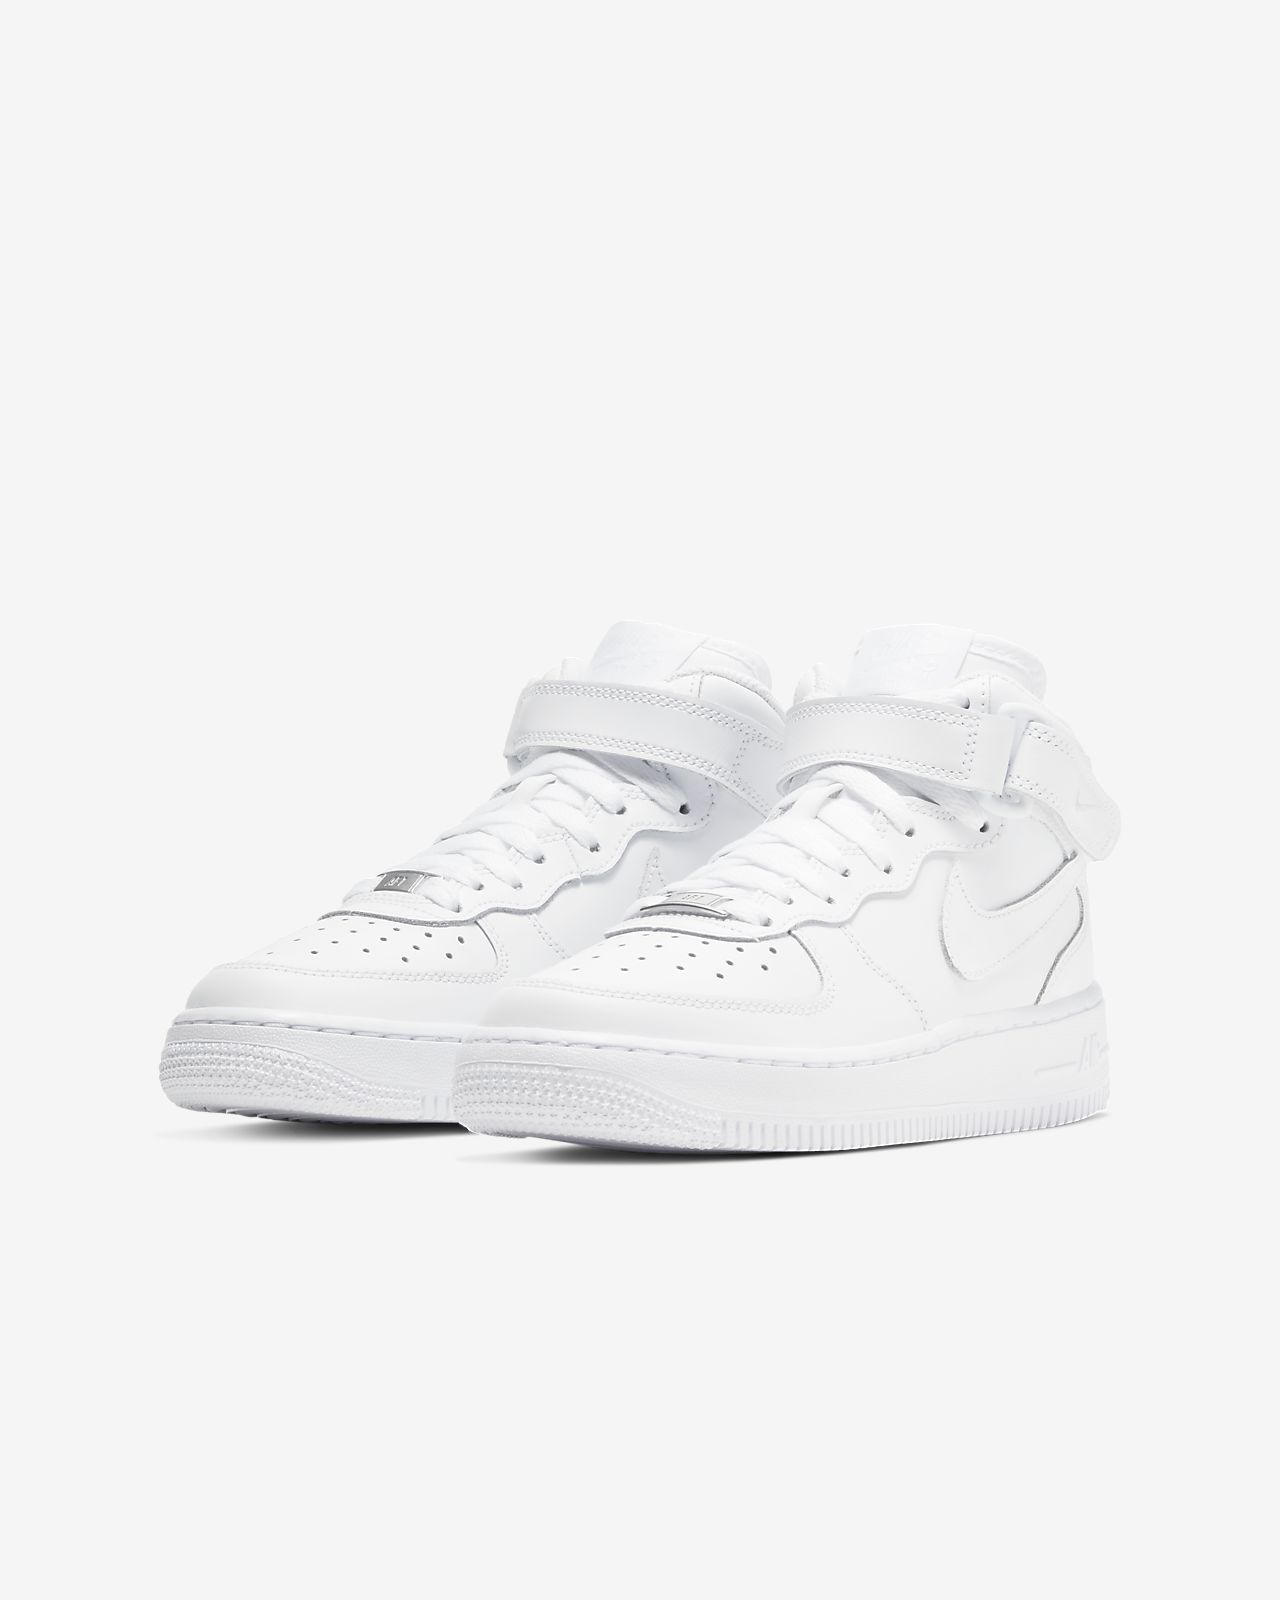 NEW IN BOX NIKE 314195 004 Size 4.5Y NIKE AIR FORCE 1 ONE